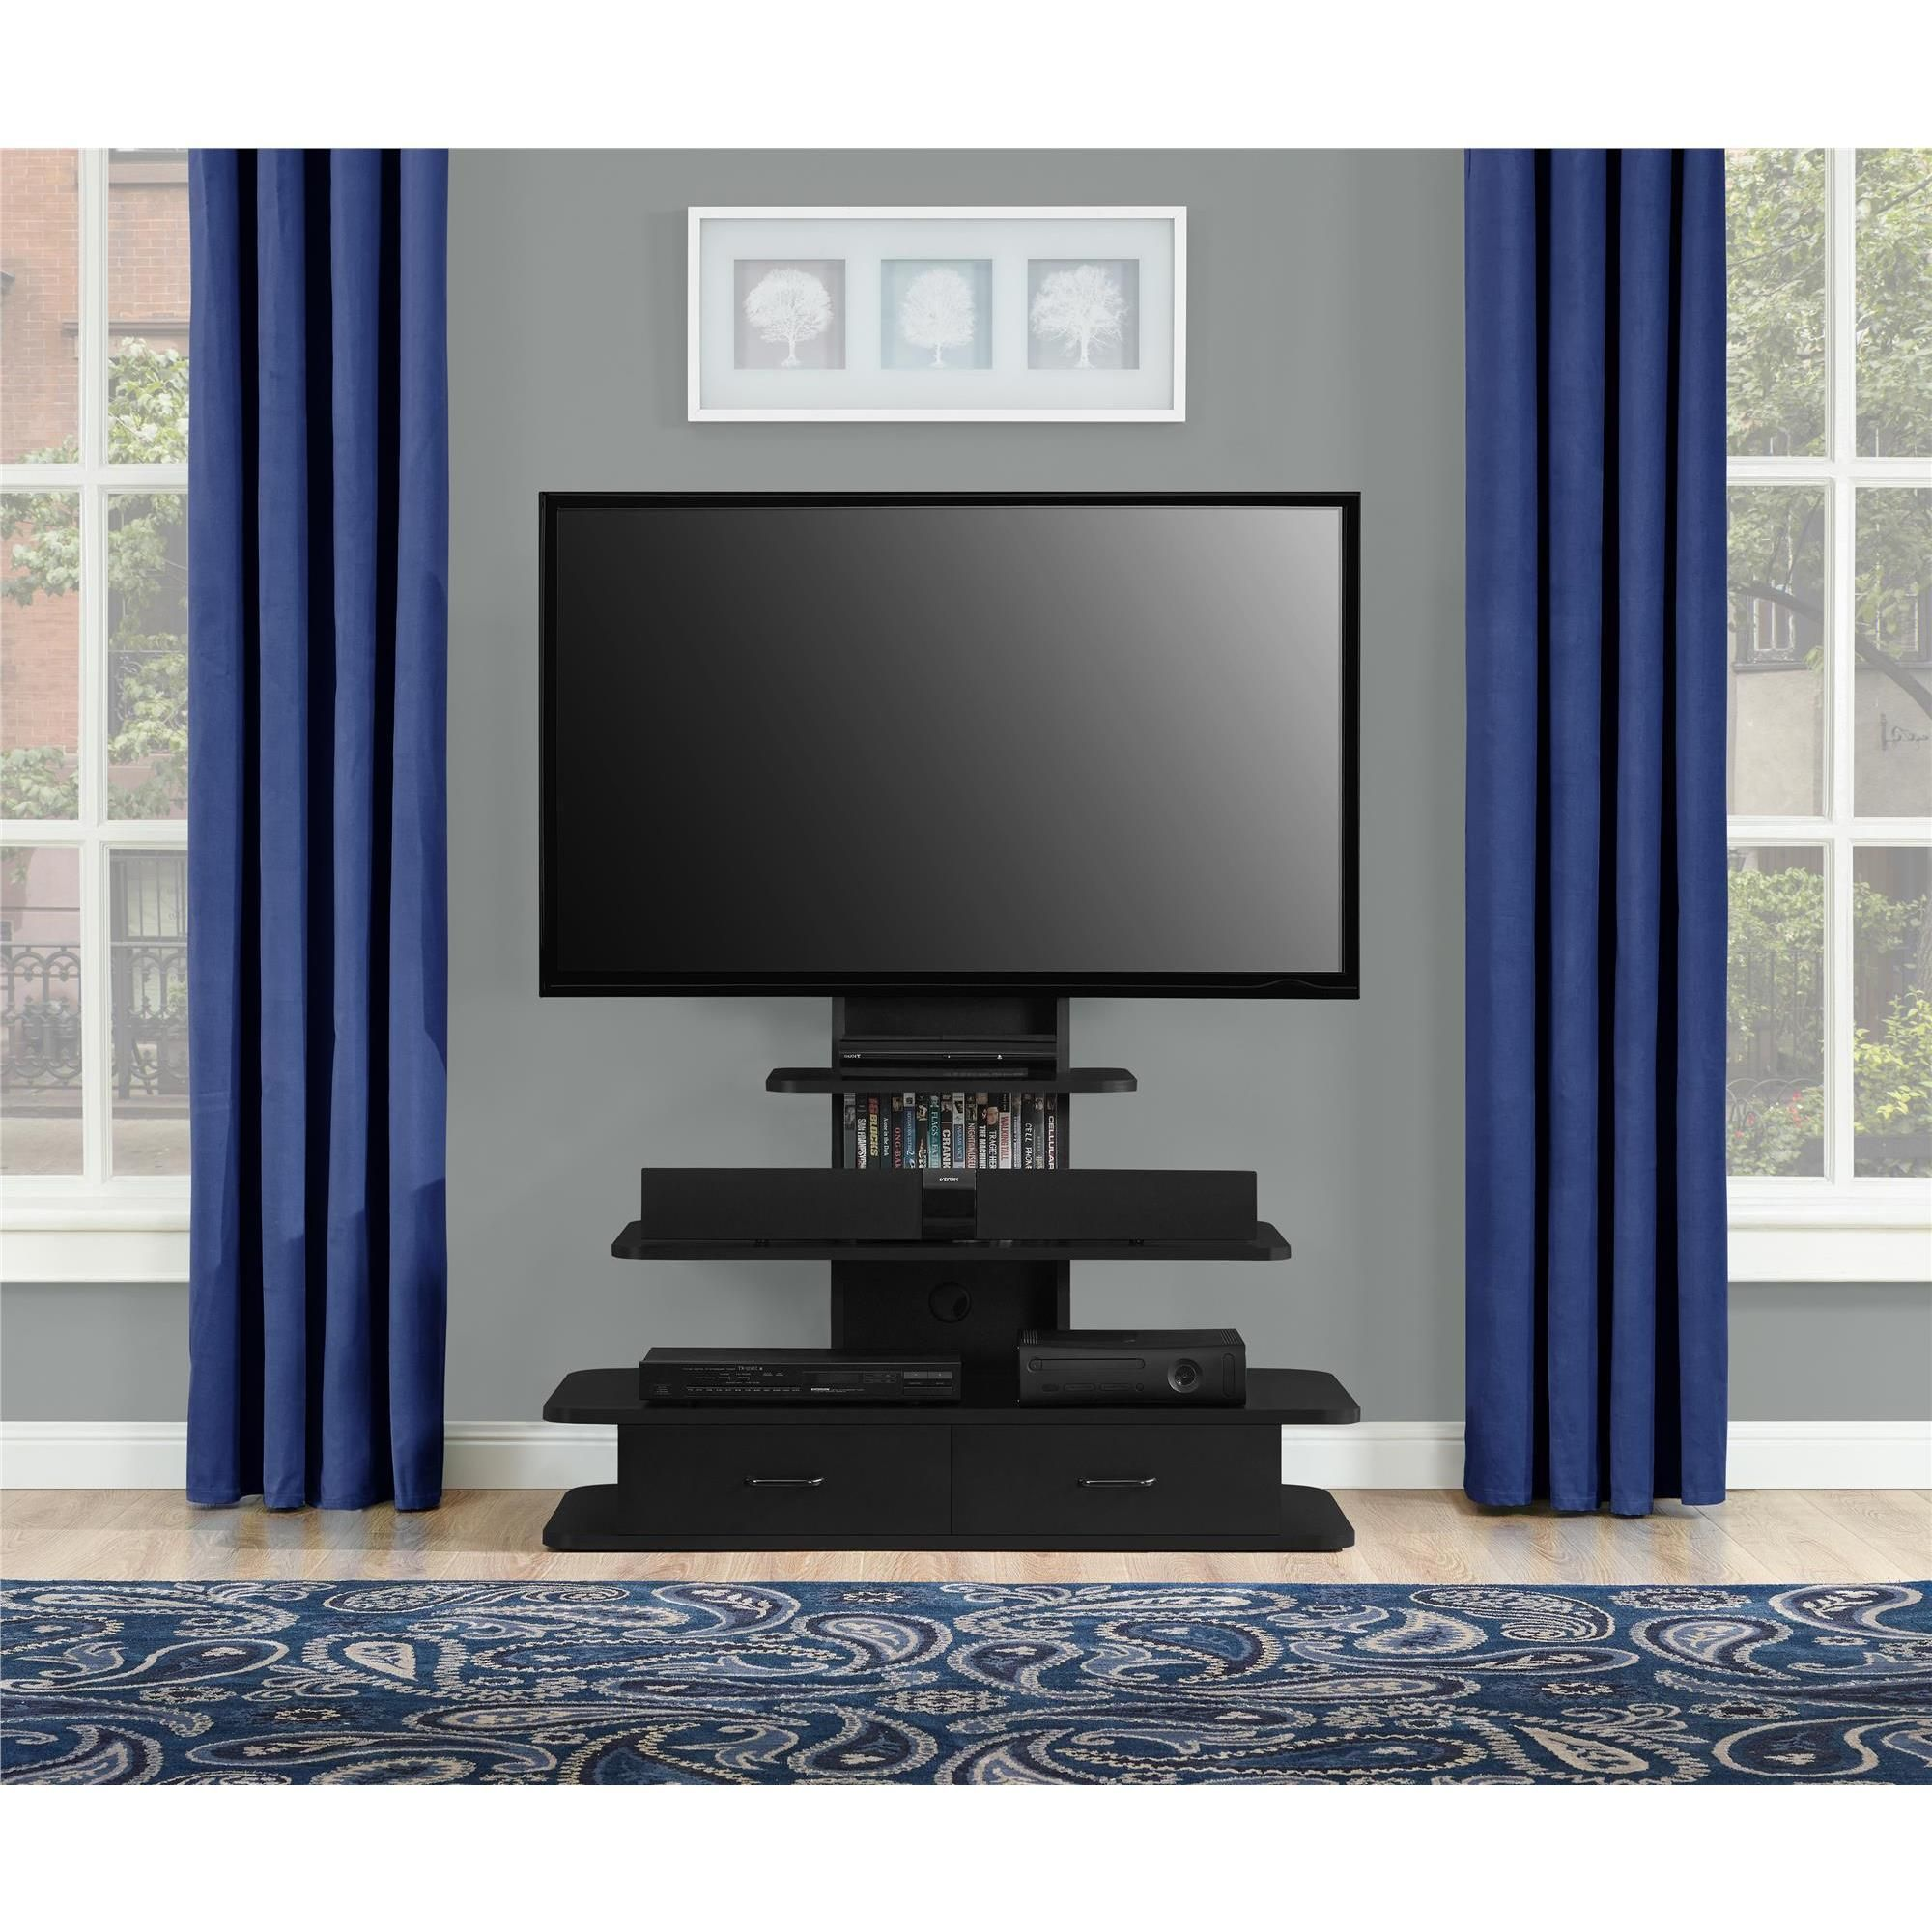 Altra Galaxy 70 Inch Tv Stand With Mount And Drawers Features A